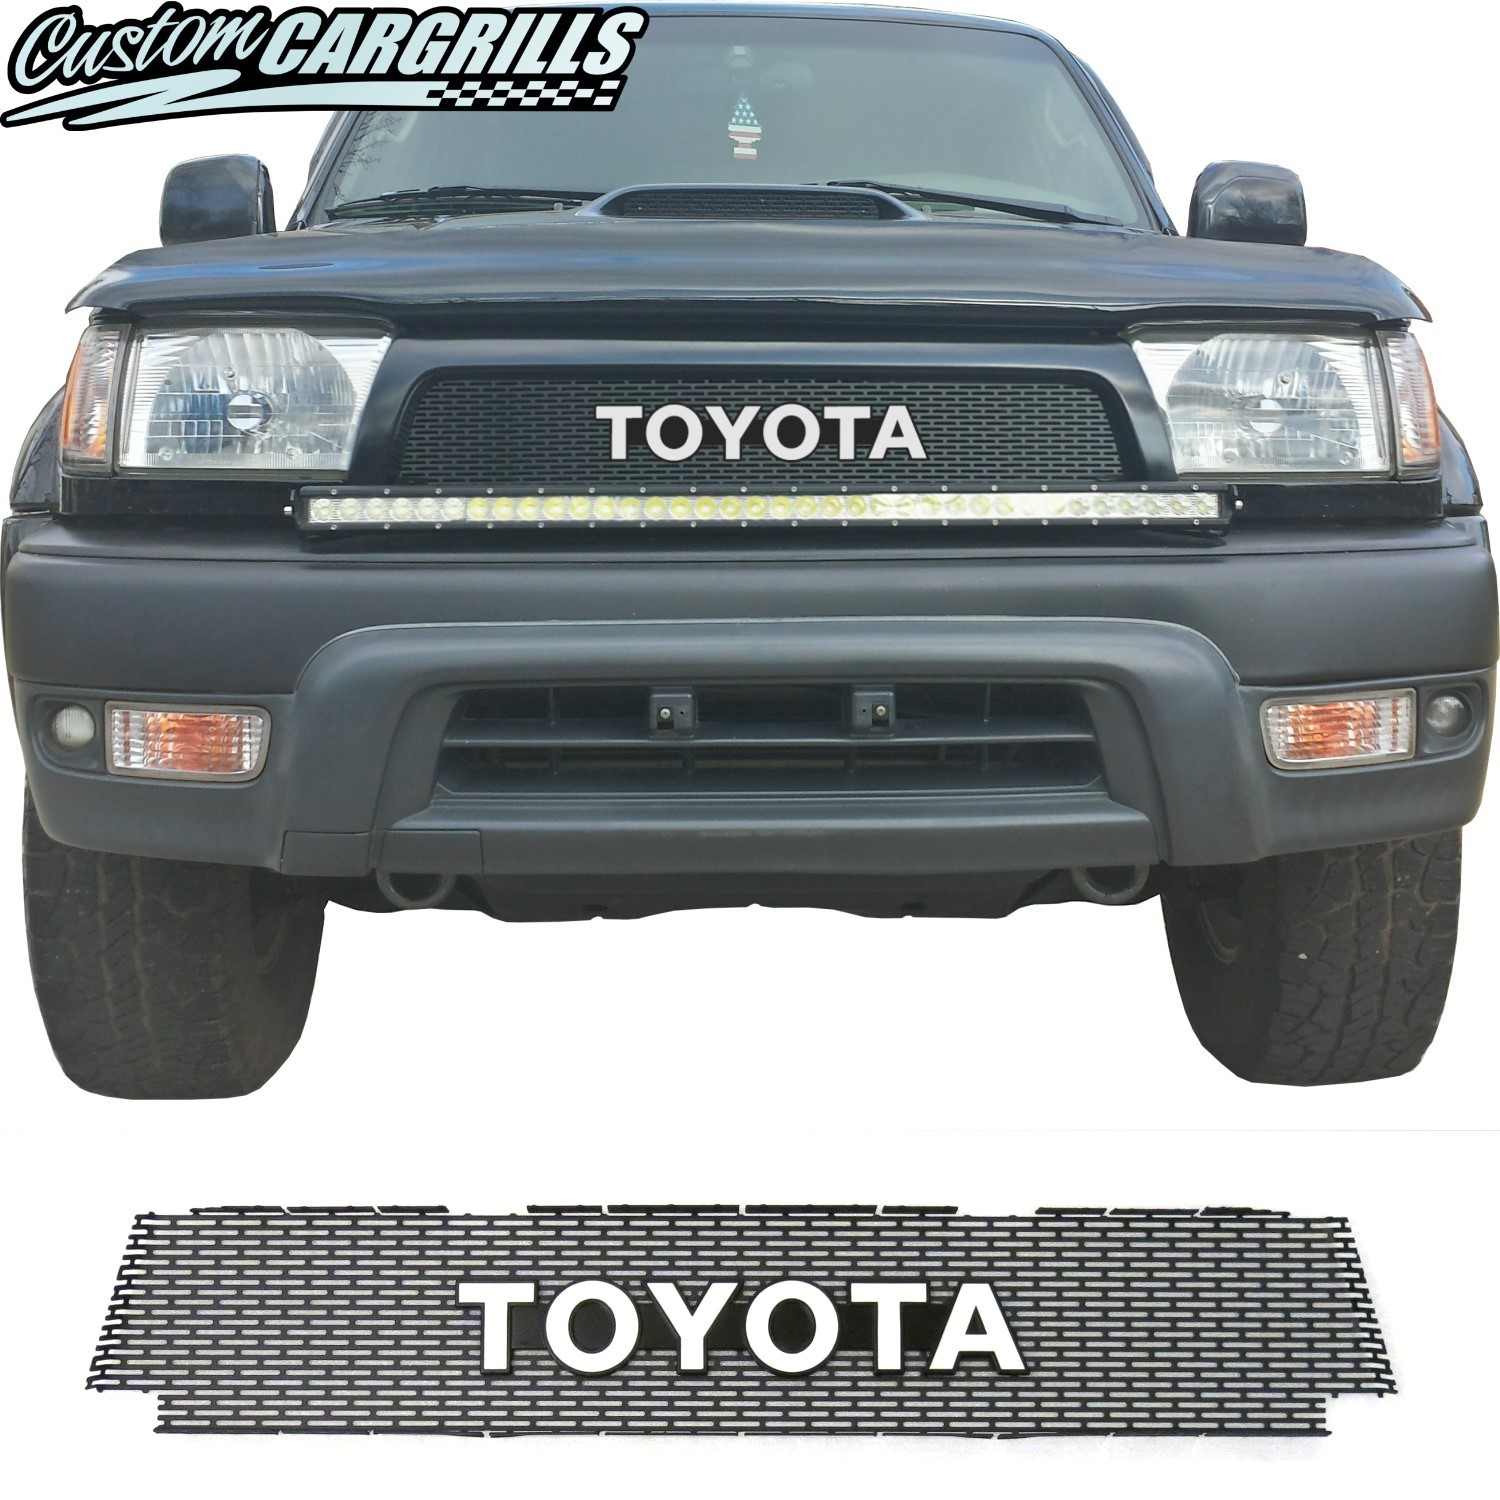 1996-98 (and 99-02*) Toyota 4Runner Grill Mesh With Toyota Emblem